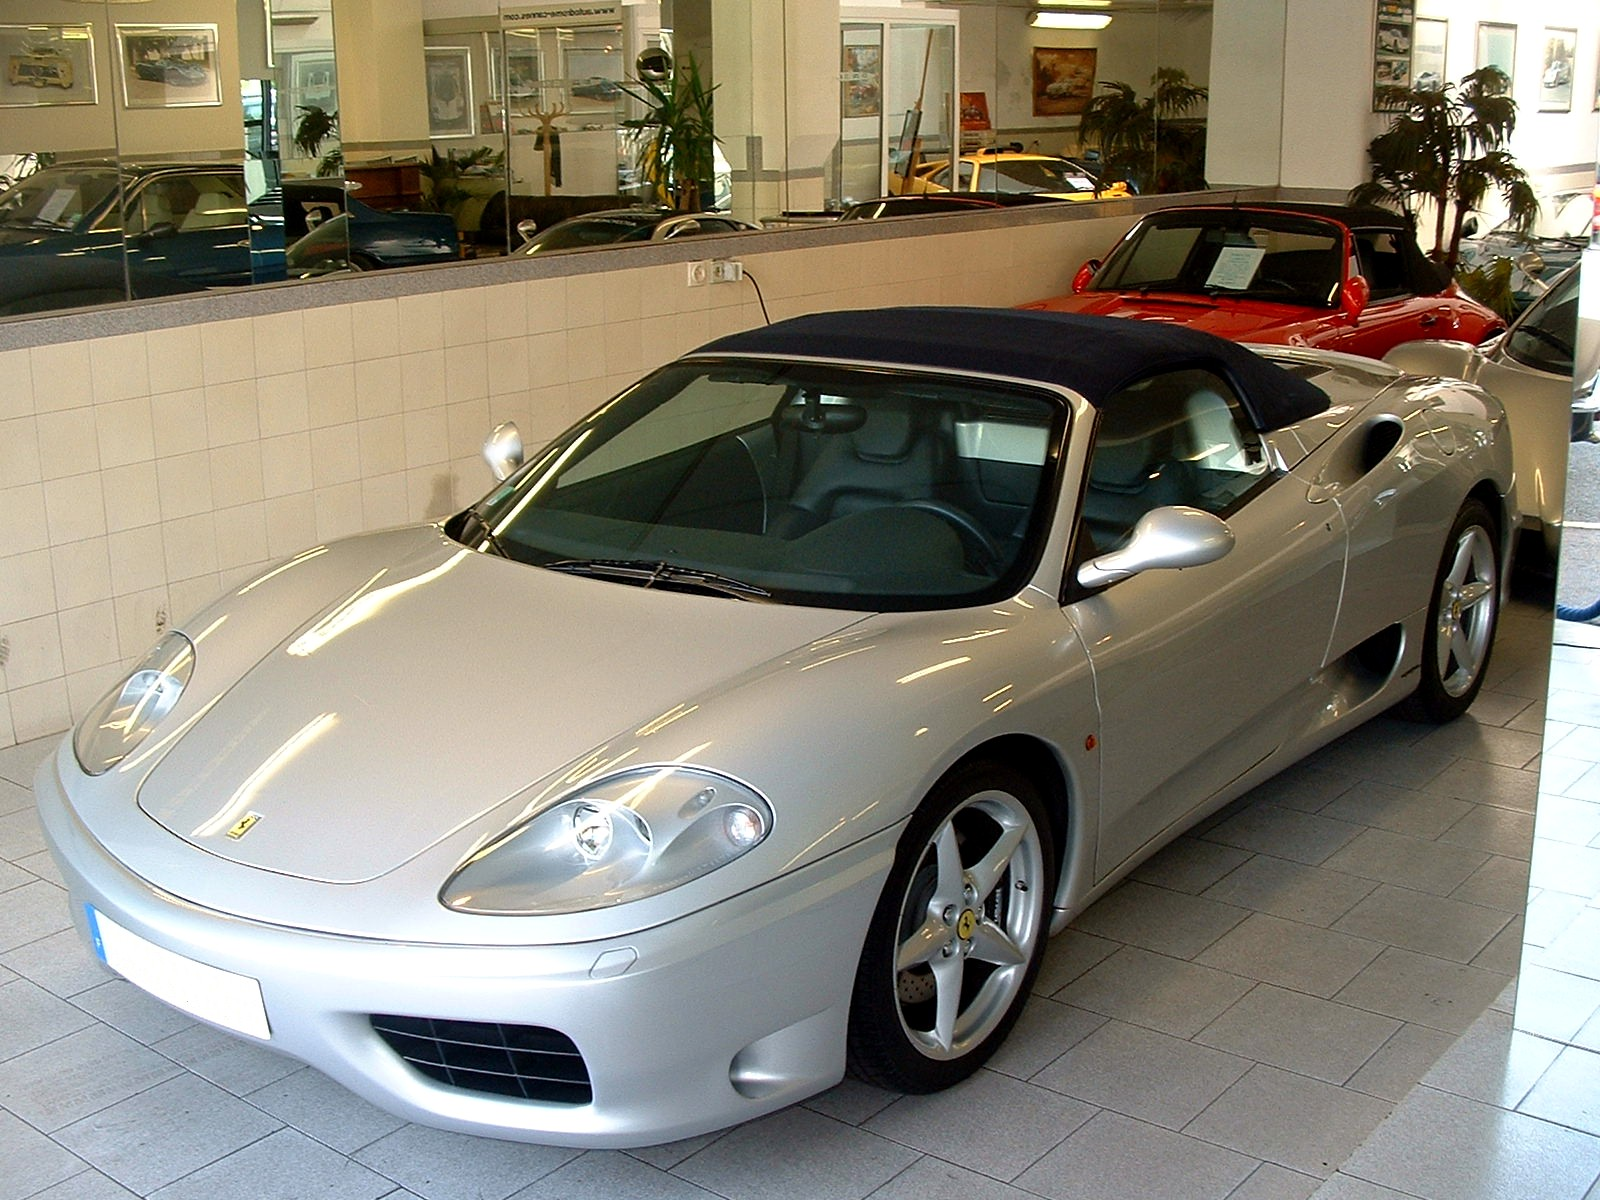 ferrari 360 spider chez autodrome cannes. Black Bedroom Furniture Sets. Home Design Ideas